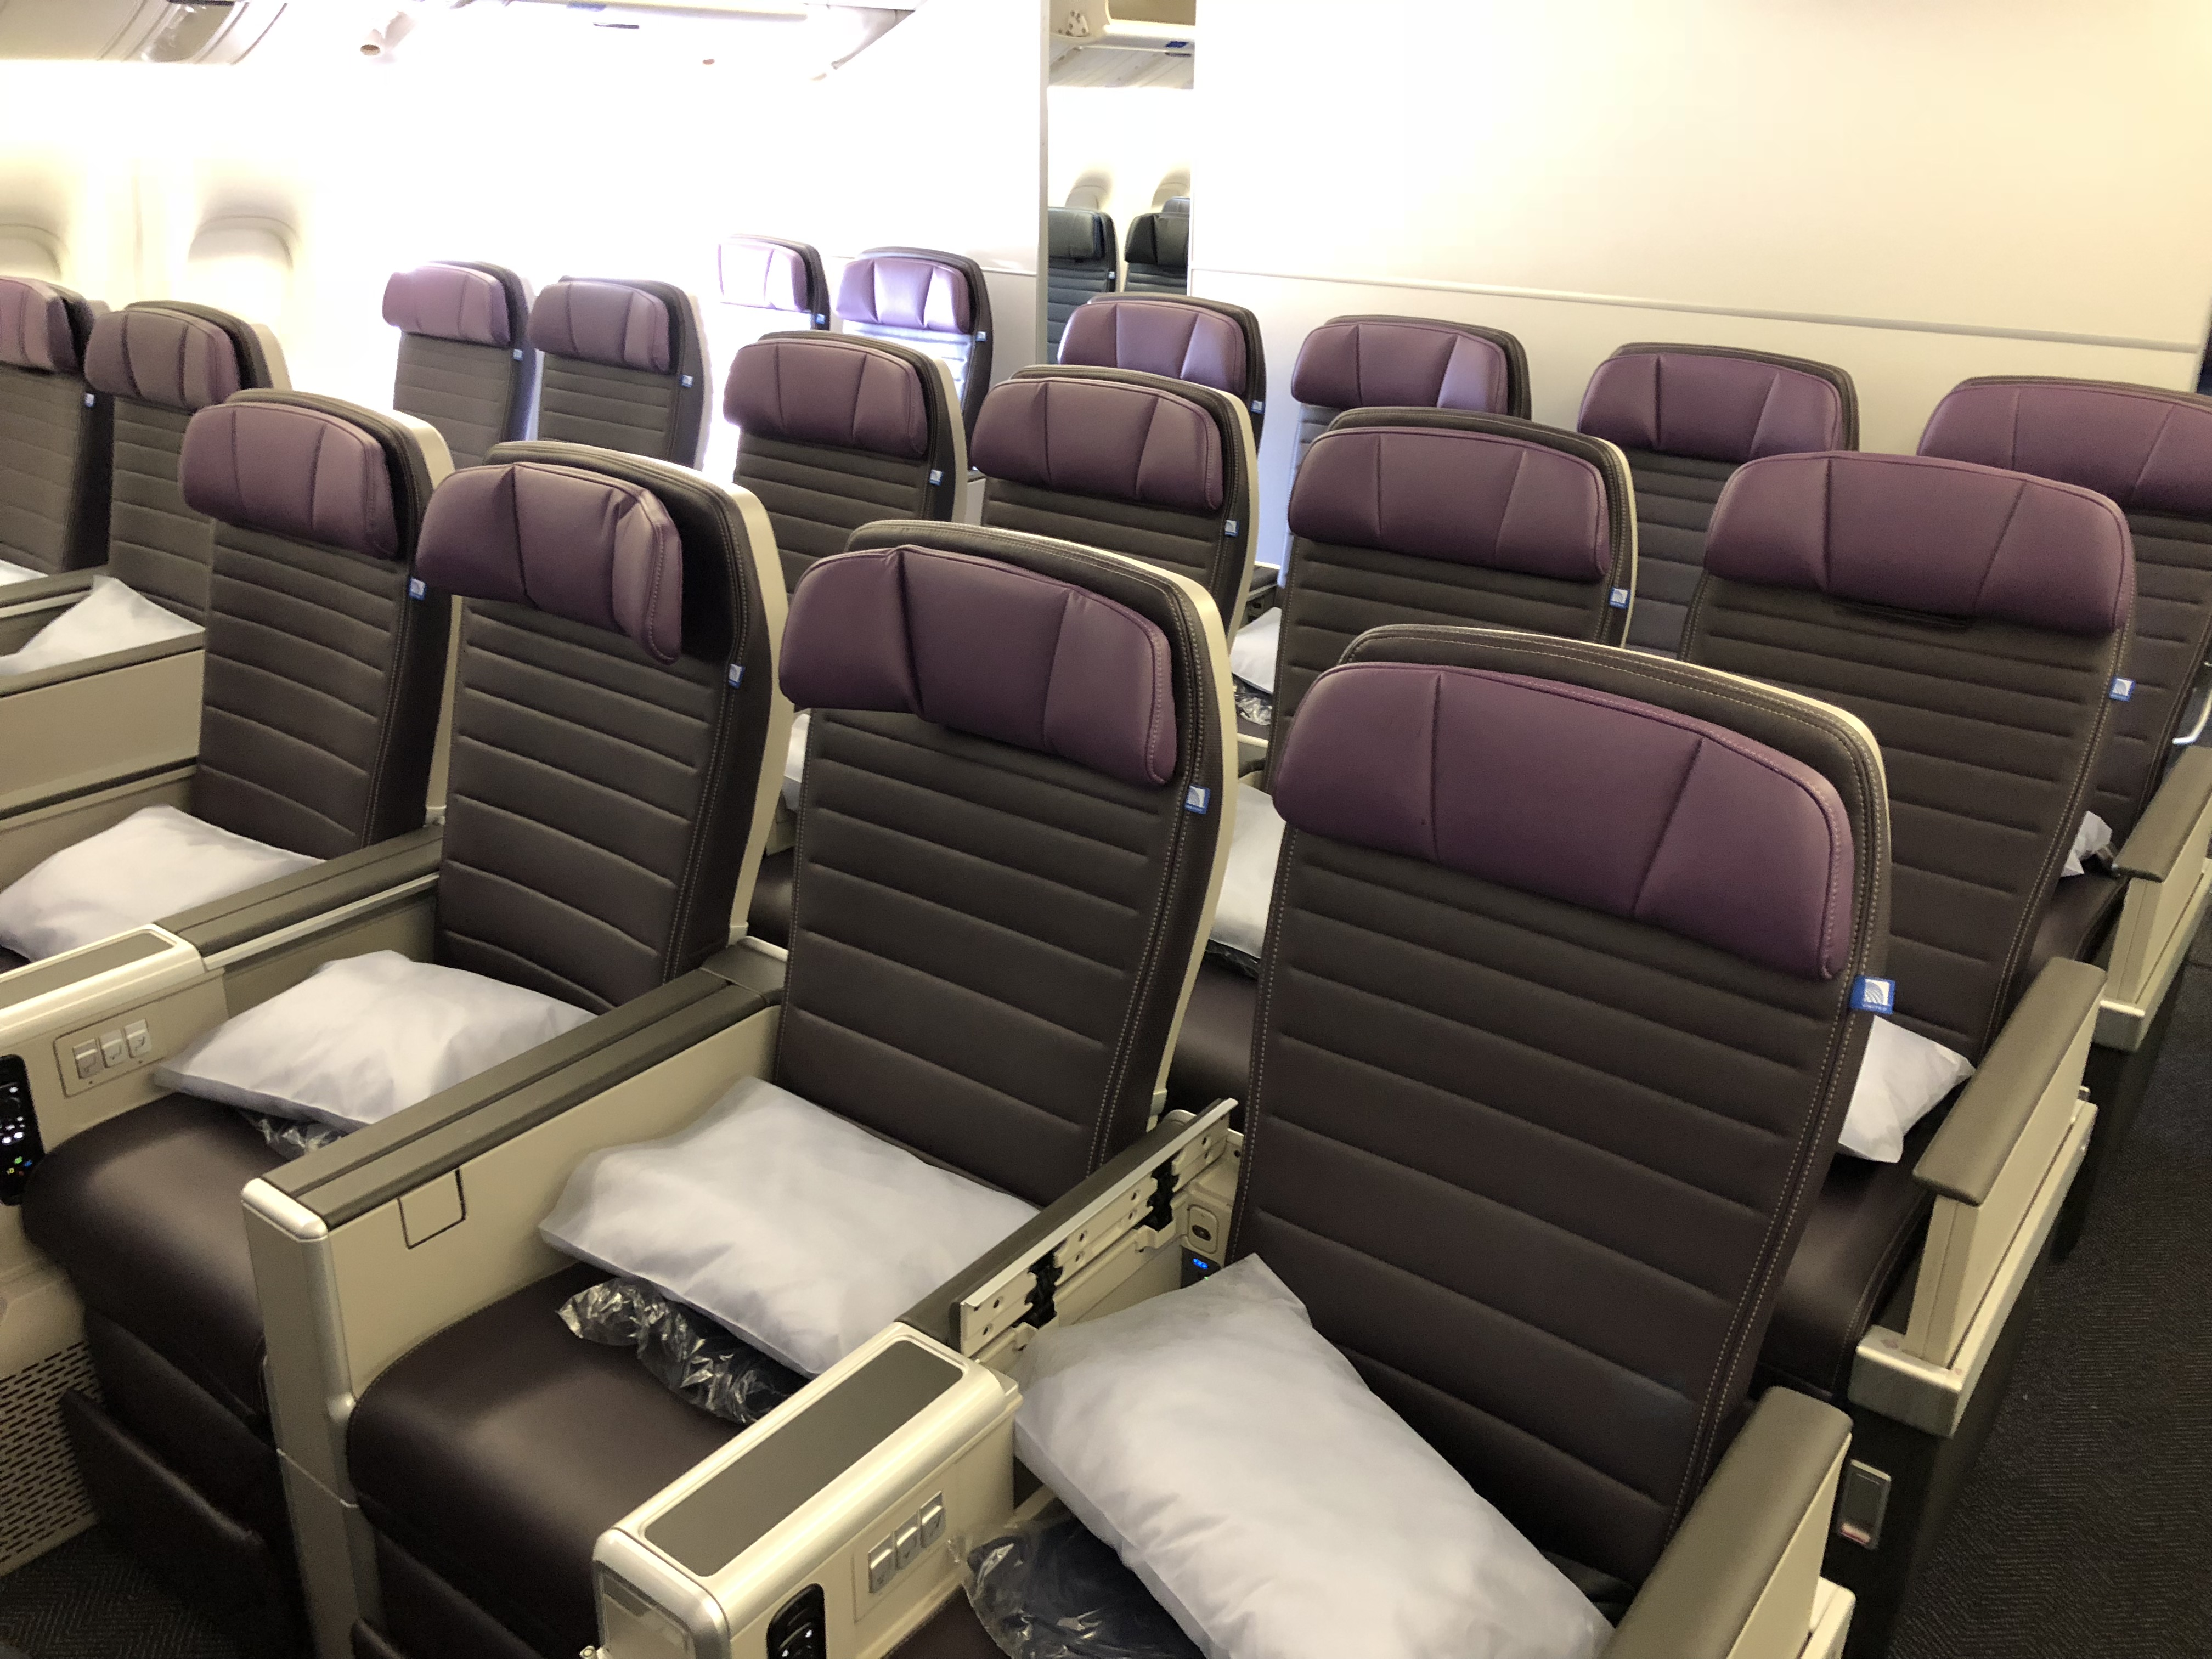 United to Initially Fly 787-10 Dreamliner on Transcon Routes